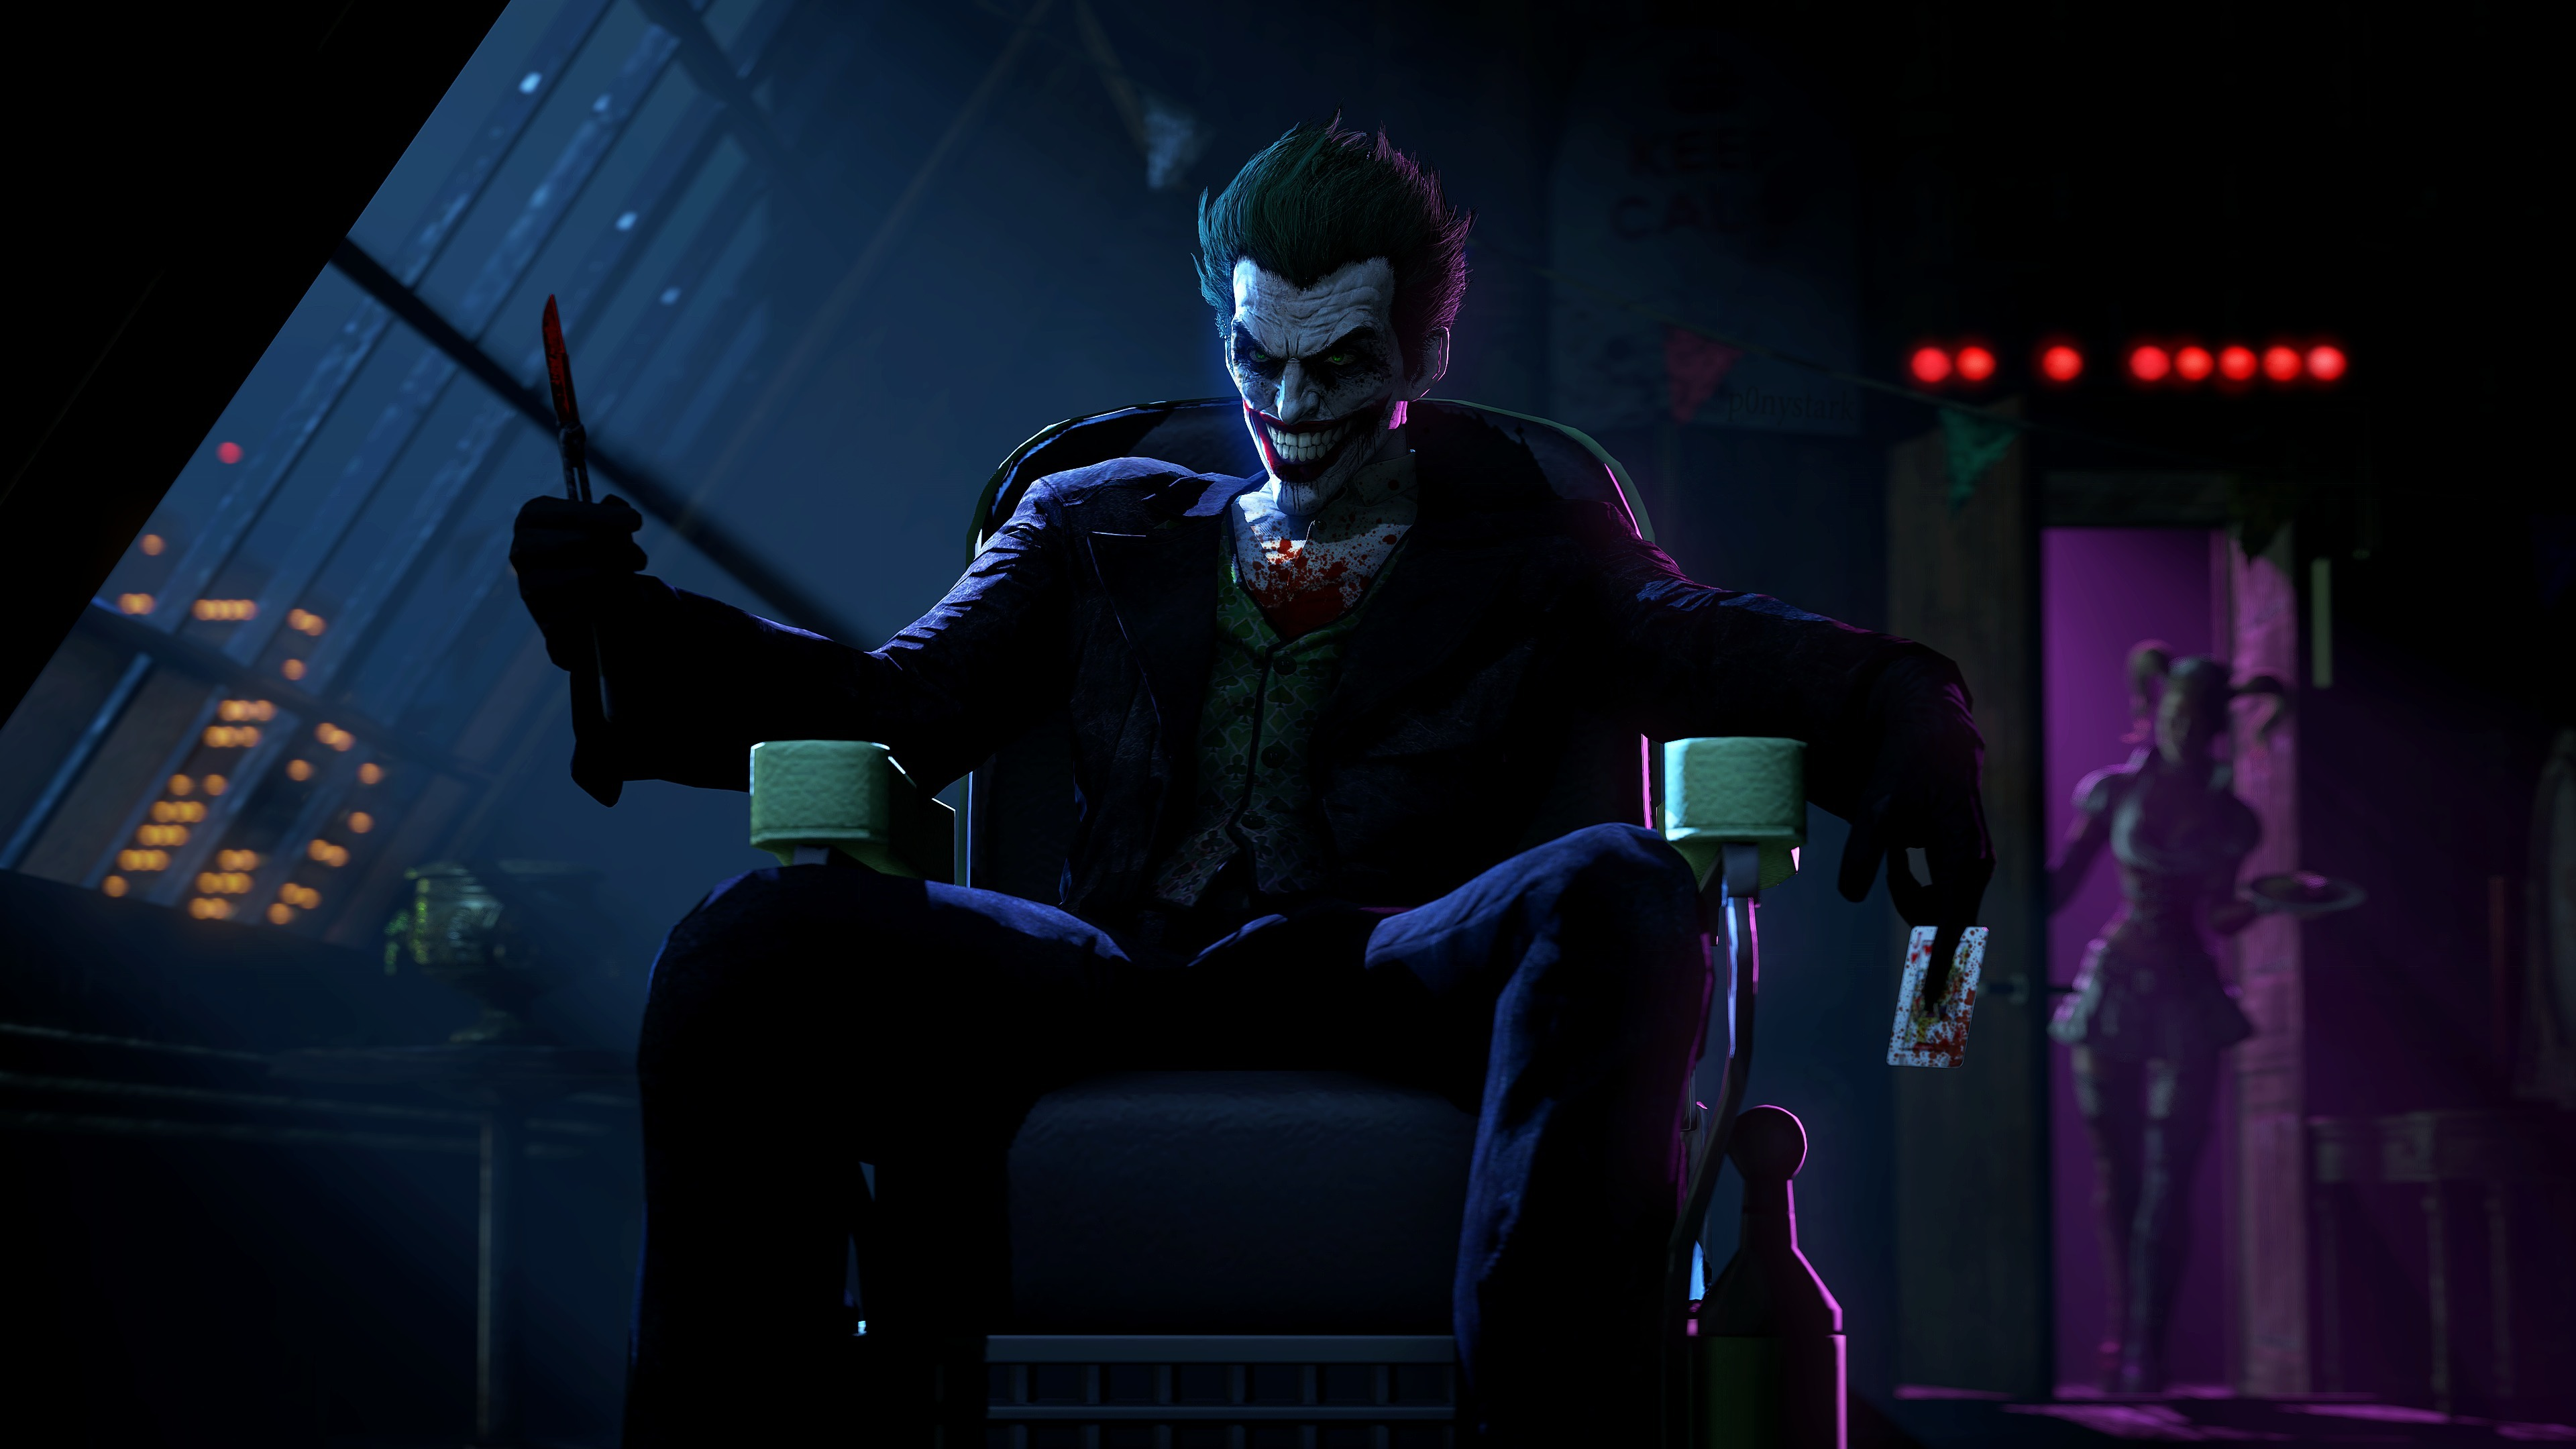 joker-in-batman-arkham-origins-do.jpg